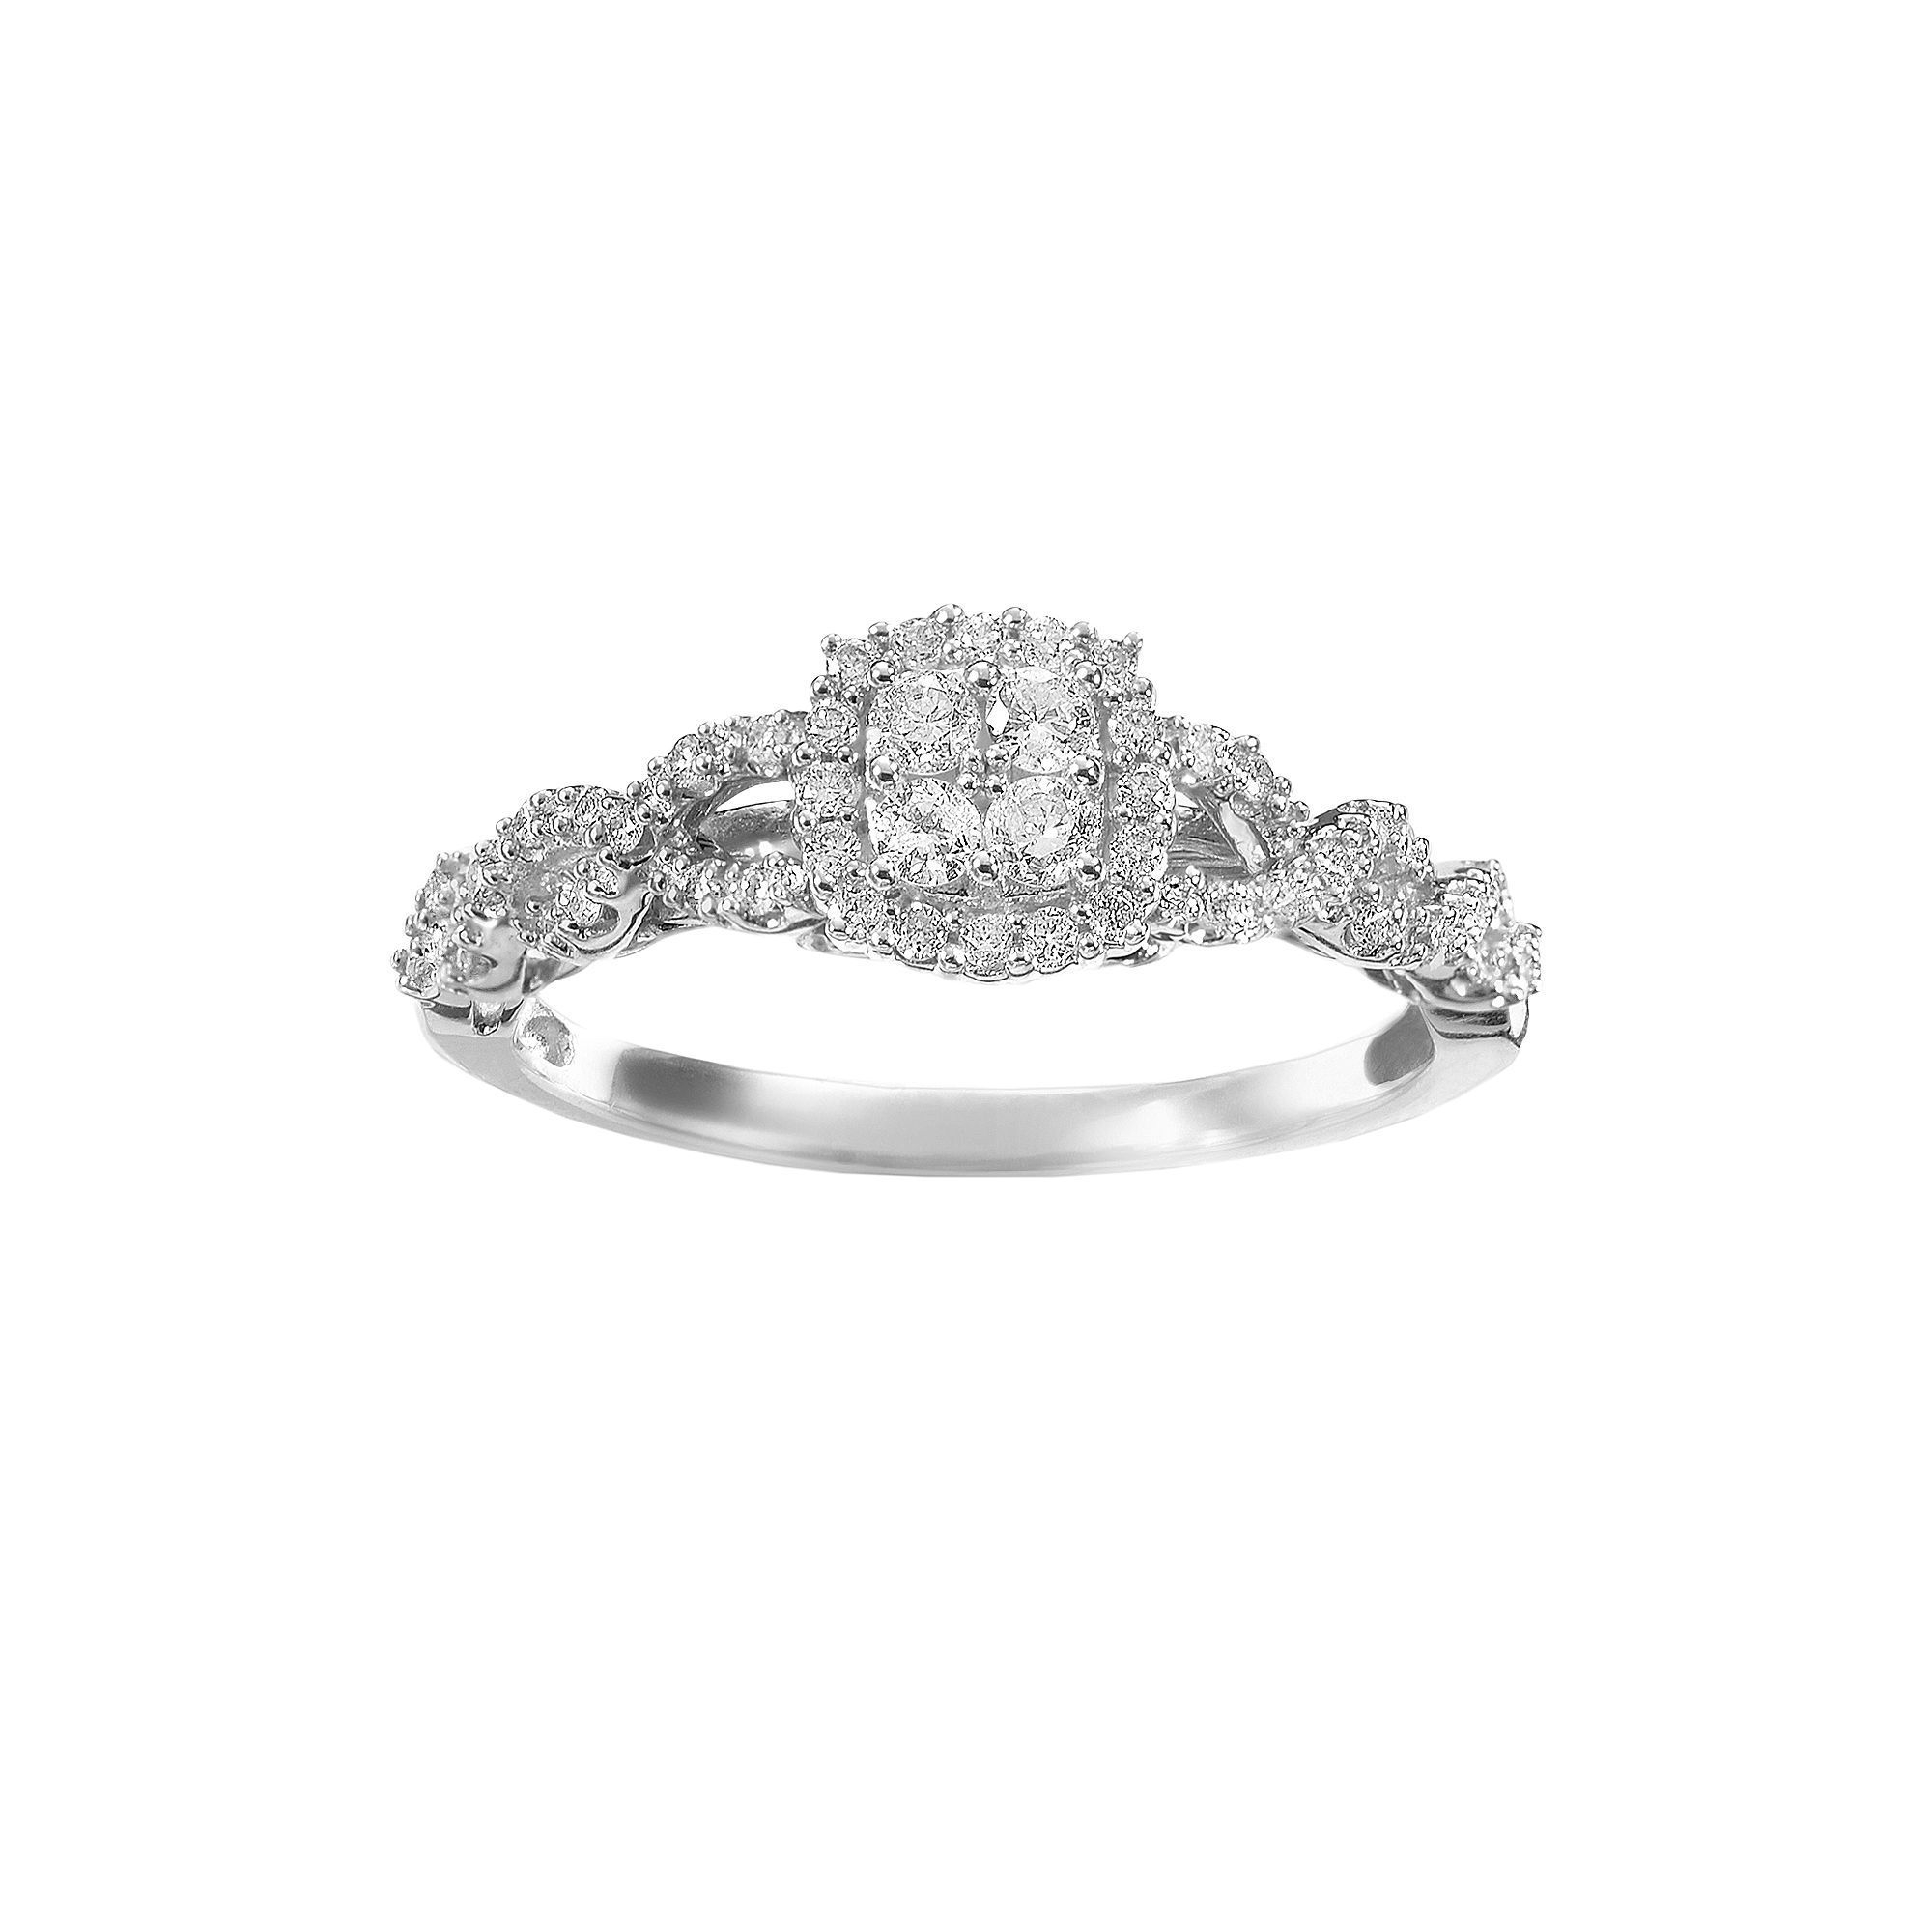 Simply Vera Vera Wang Diamond Twist Frame Engagement Ring In 14K Throughout Most Recently Released Oval Diamond Double Frame Twist Vintage Style Bridal Rings In 14K White Gold (Gallery 4 of 15)